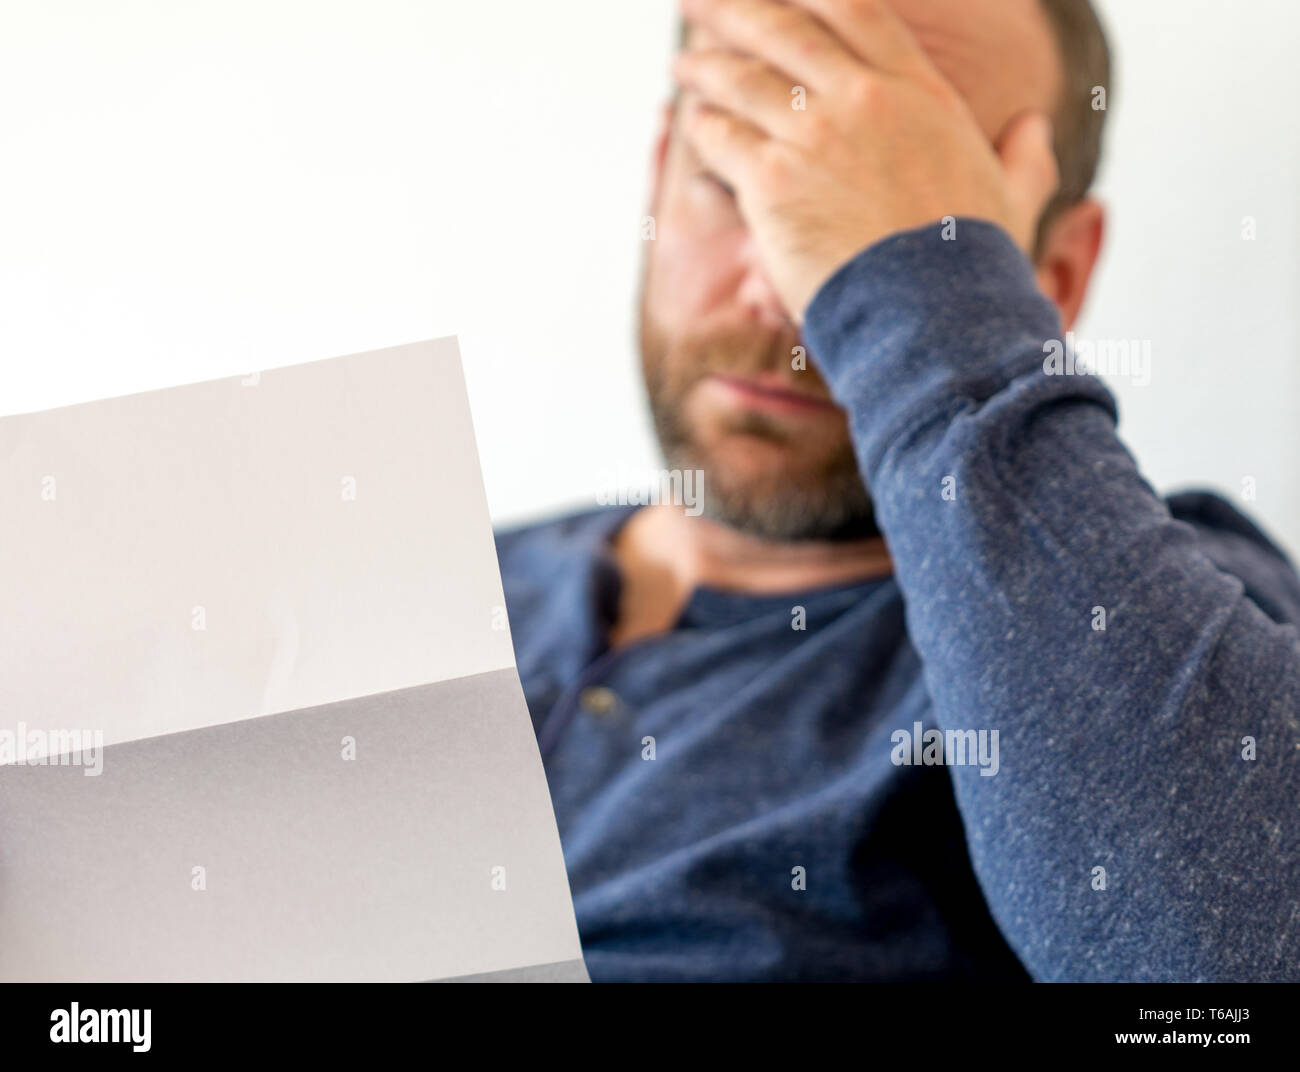 man in his forties sitting on a couch reachts emotionally to bad news he receives in a letter with selective focus and copy space - Stock Image